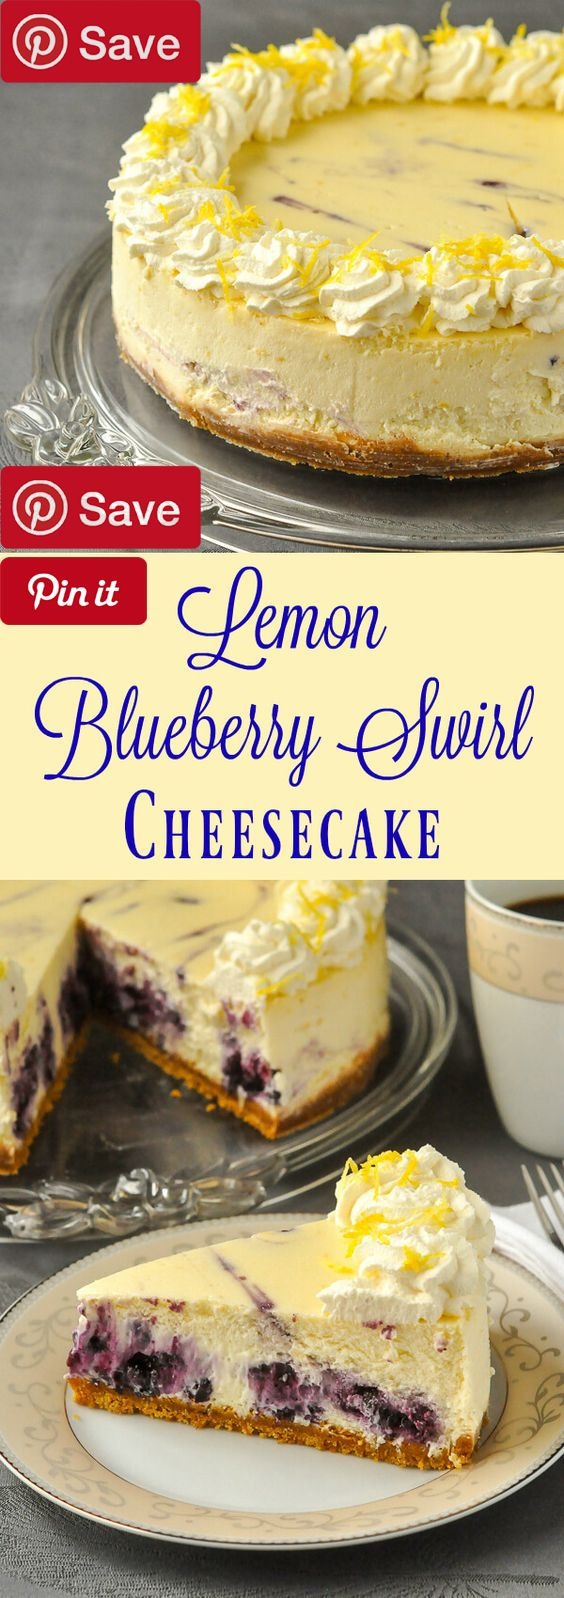 Lemon Blueberry Swirl Cheesecake - two extremely complimentary flavours come together deliciously when a blueberry compote gets swirled Ingredients Vegetarian Produce 1 cups Blueberries fresh or frozen 2 Lemons Zest of Refrigerated 3 Eggs Baking & Spices 3 Rounded tsp icing sugar 1 Slightly rounded tbsp corn starch 1 cup Sugar 1 tsp Vanilla extract 1 tsp Vanilla extract pure Snacks 1 1/3 cups Graham cracker crumbs Dairy 1/3 cup Butter 1 3 eight ounce packages ounces Cream...